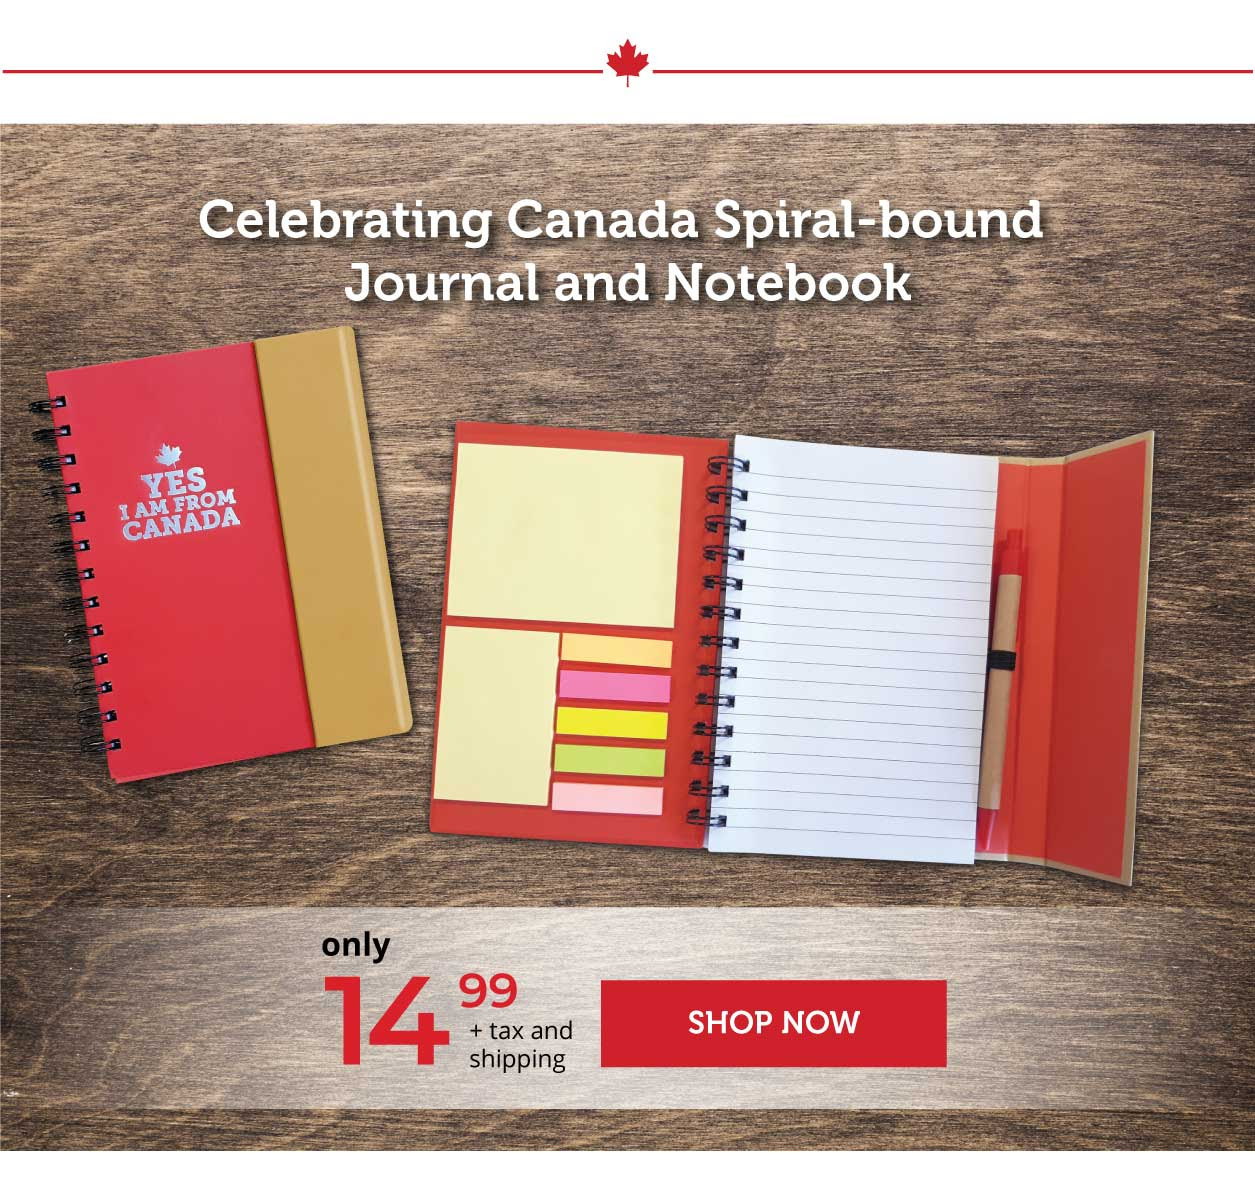 Celebrating Canada Journal